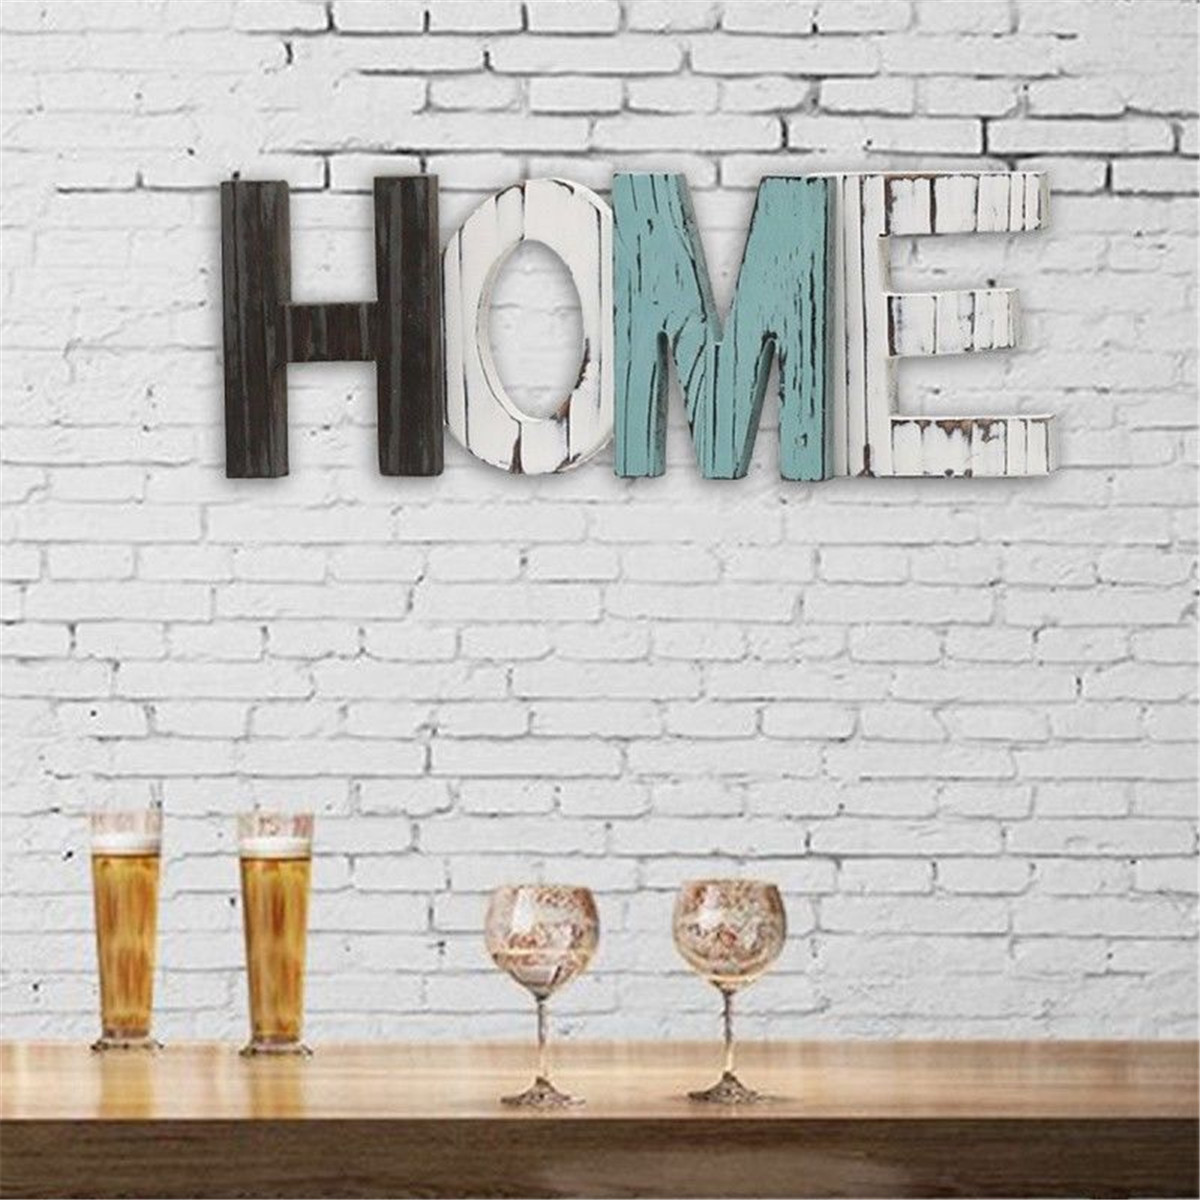 home wood amp words home decor wooden signs kelowna - HD1200×1200